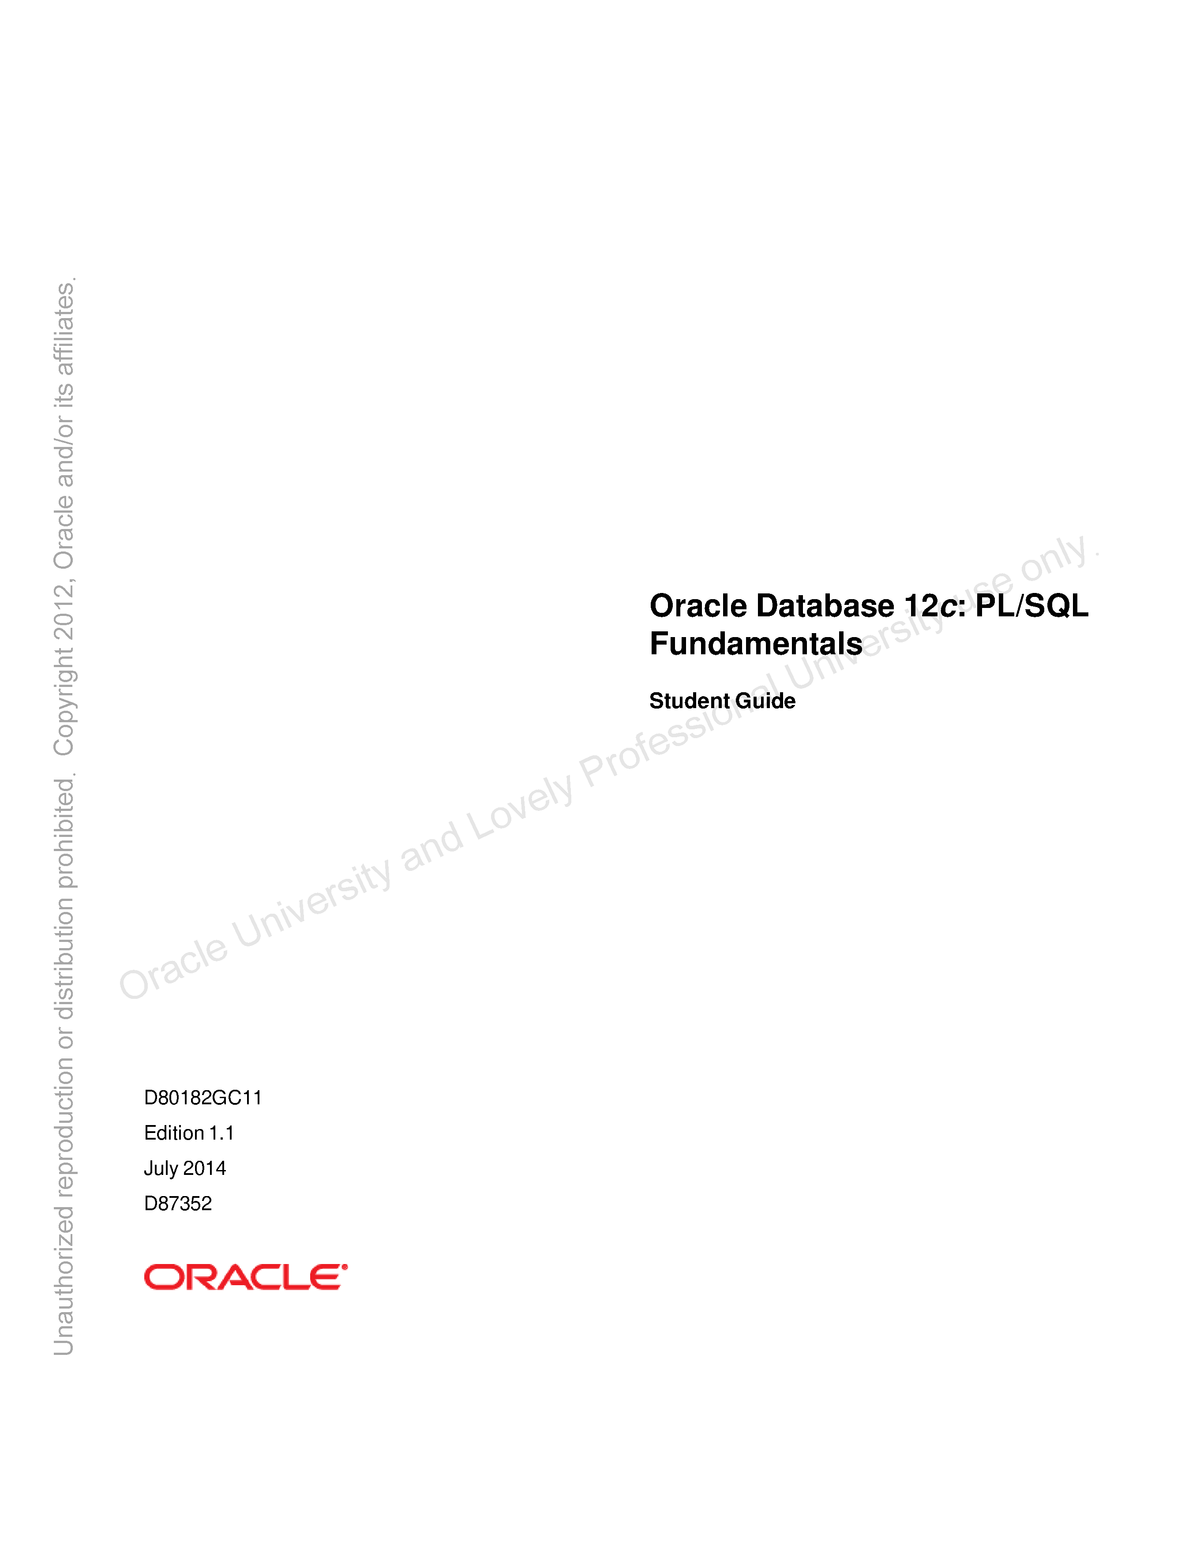 Oracle Workshop Guide 5 - INT-306: DBMS - StuDocu